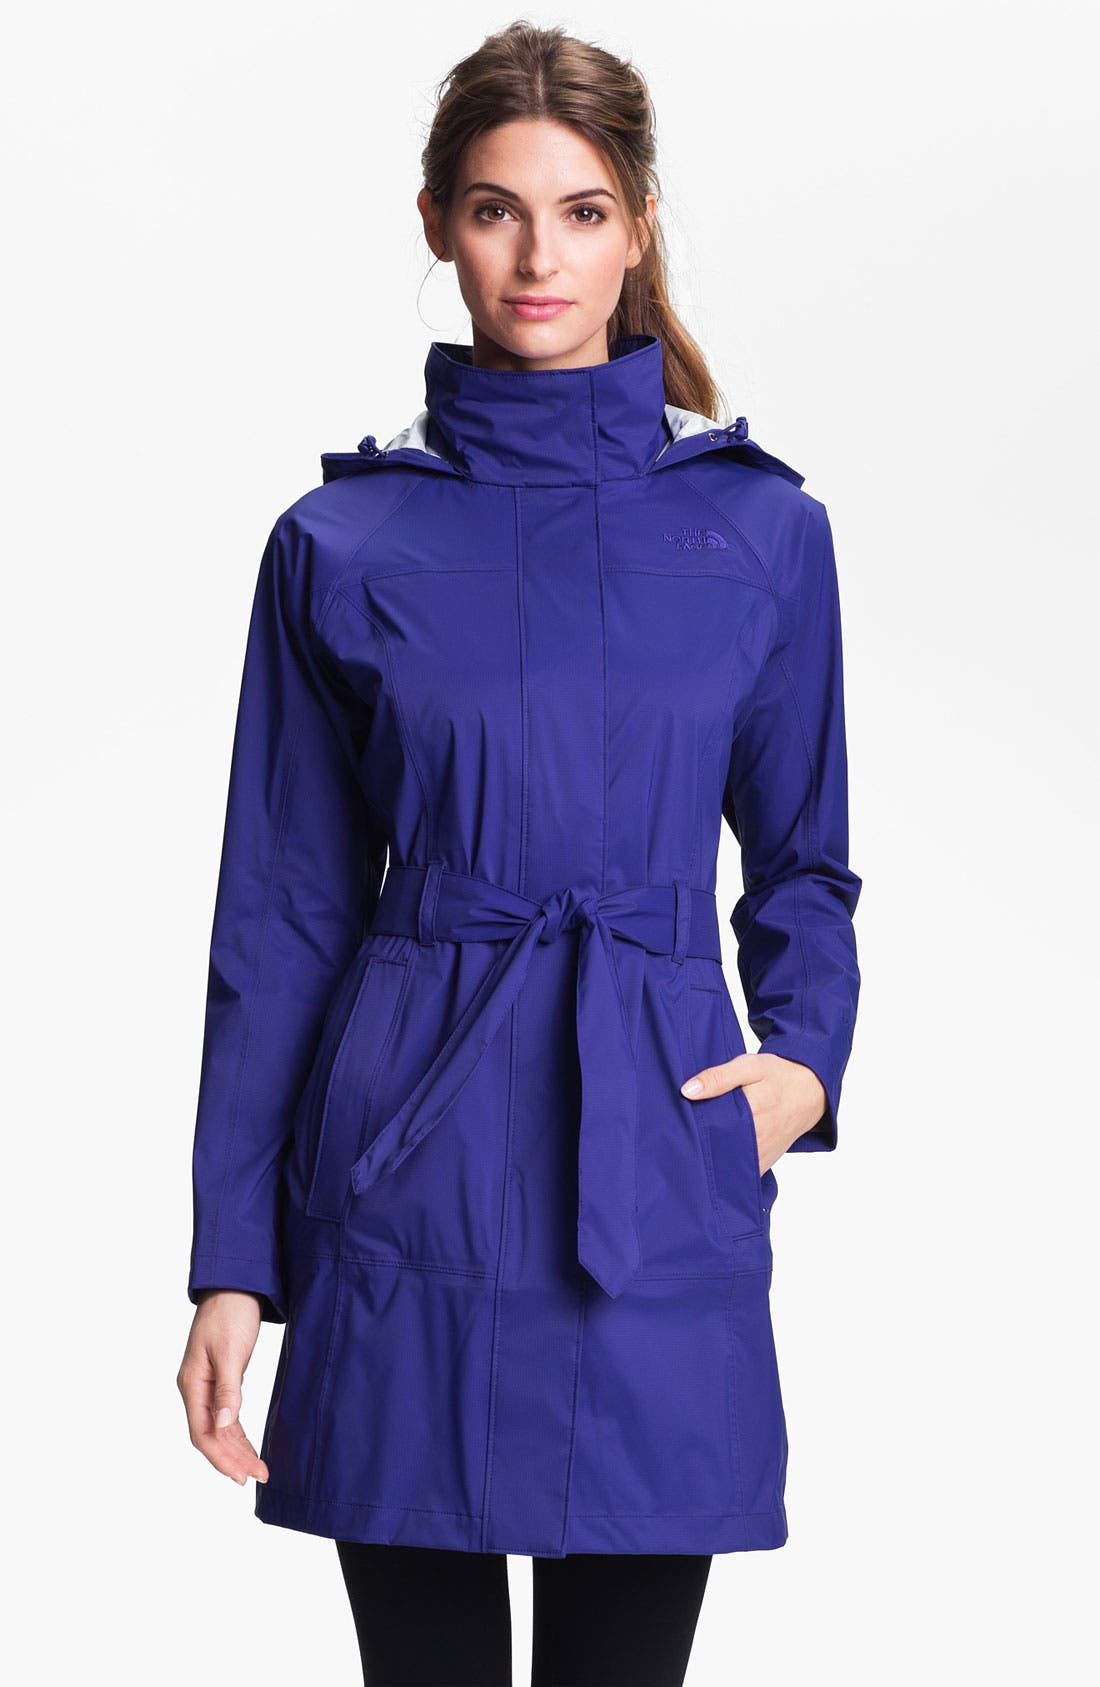 Main Image - The North Face 'Grace' Trench Coat